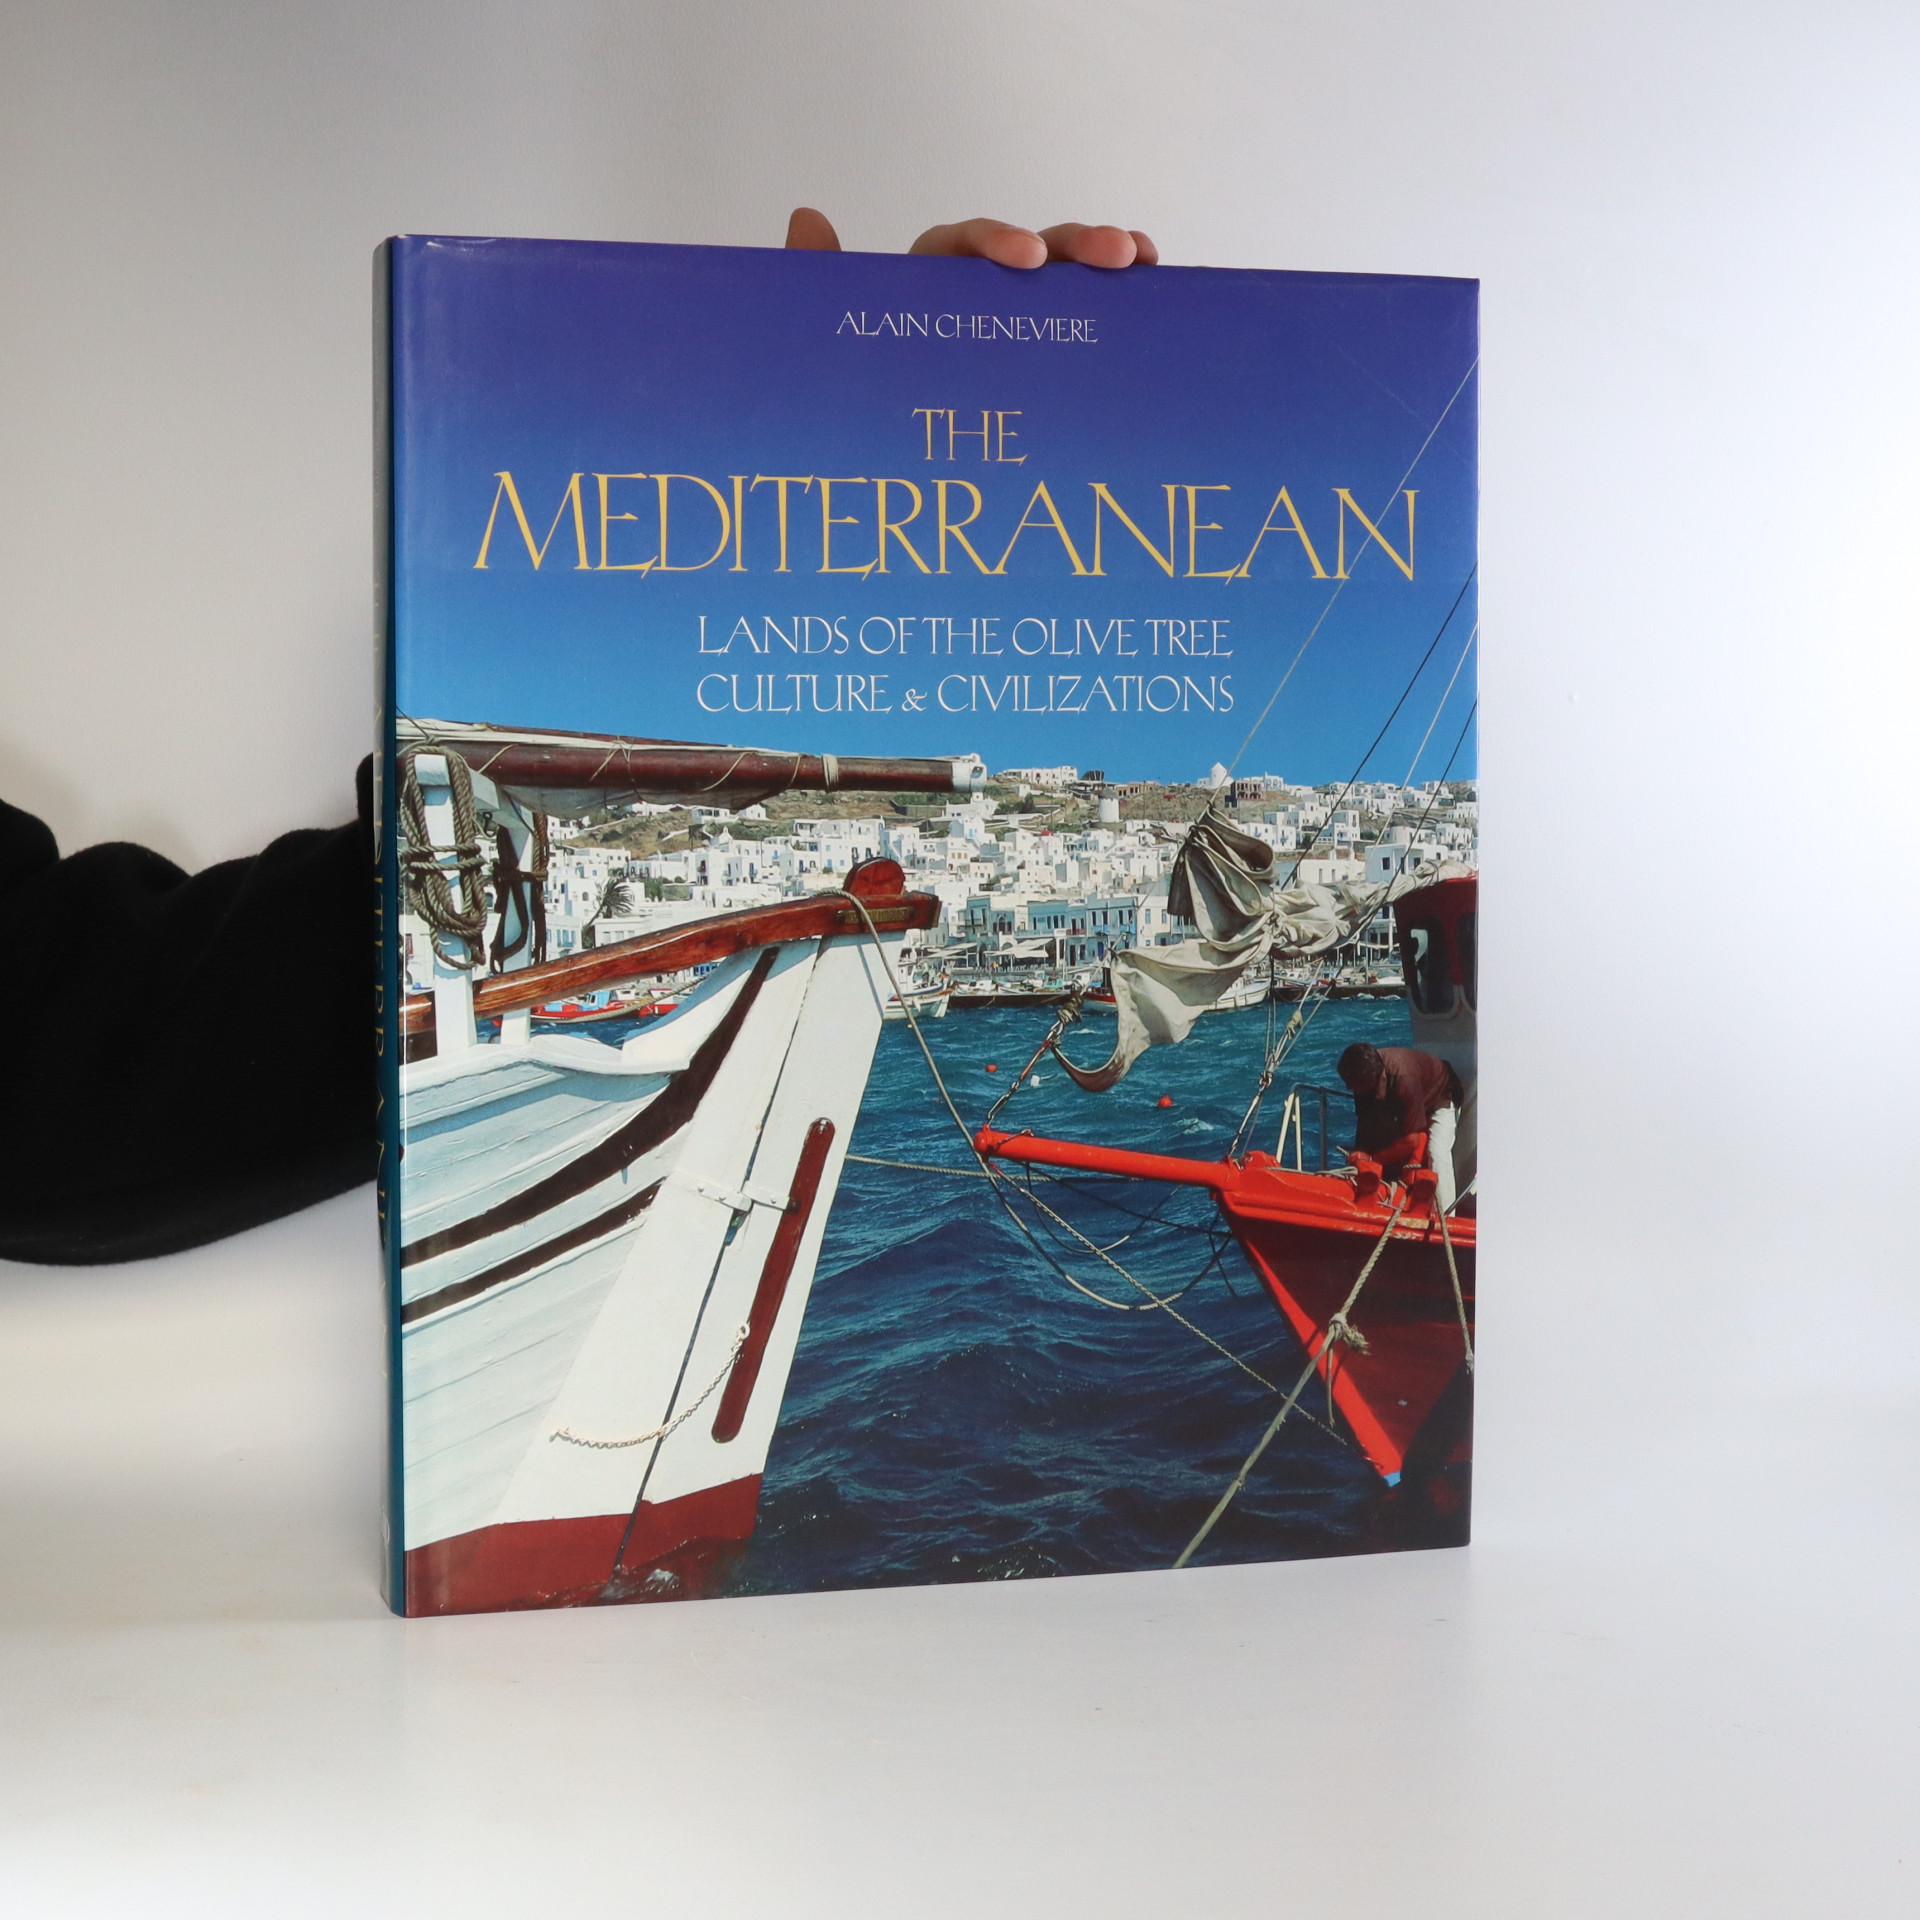 antikvární kniha The Mediterranean. Lands of the olive tree, culture and civilizations., 1997